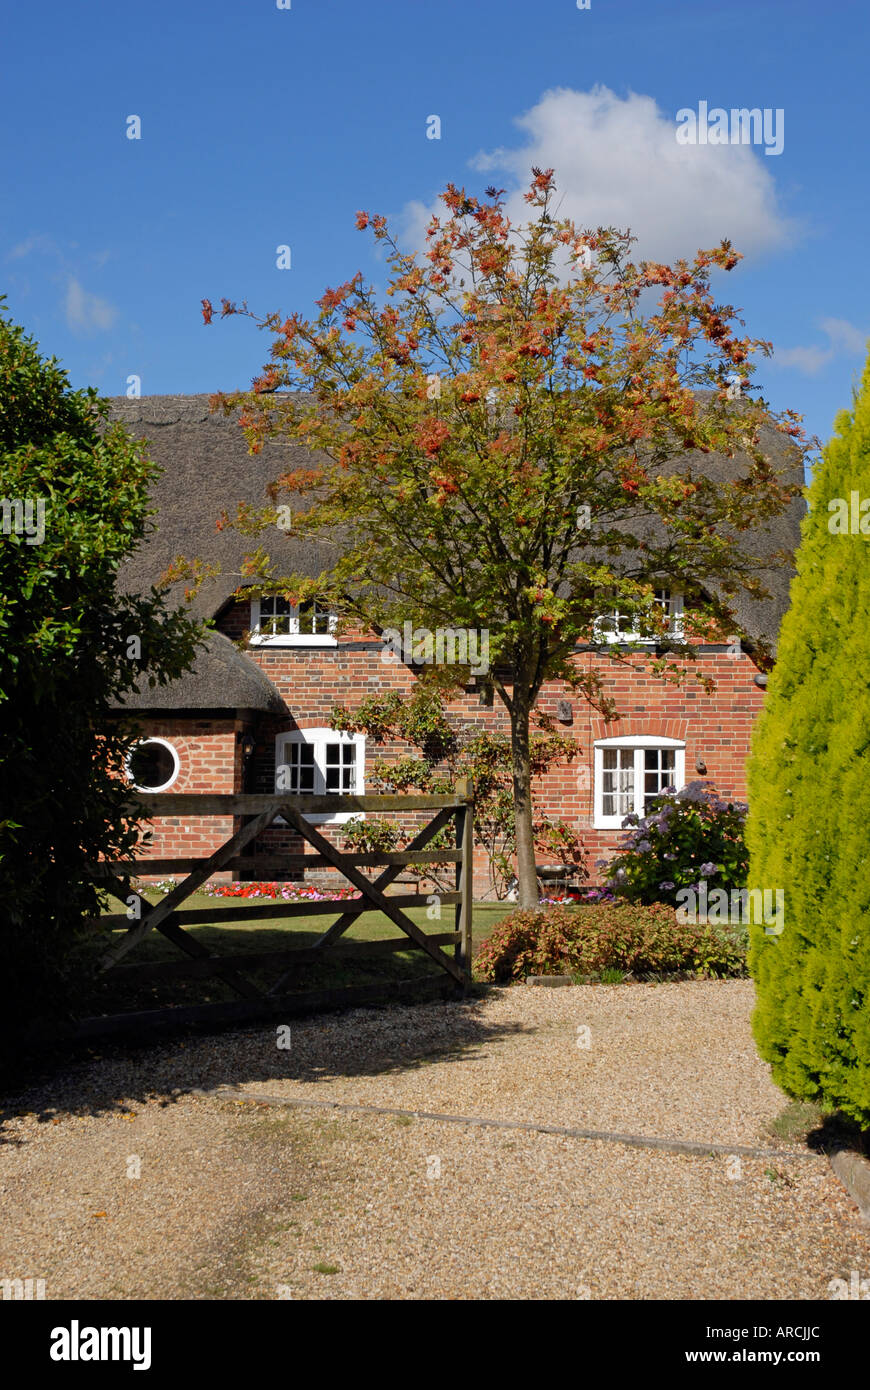 Gated entrance to thatched country cottage, brick built, with blue sky. Gravel drive. Tree in garden - Stock Image